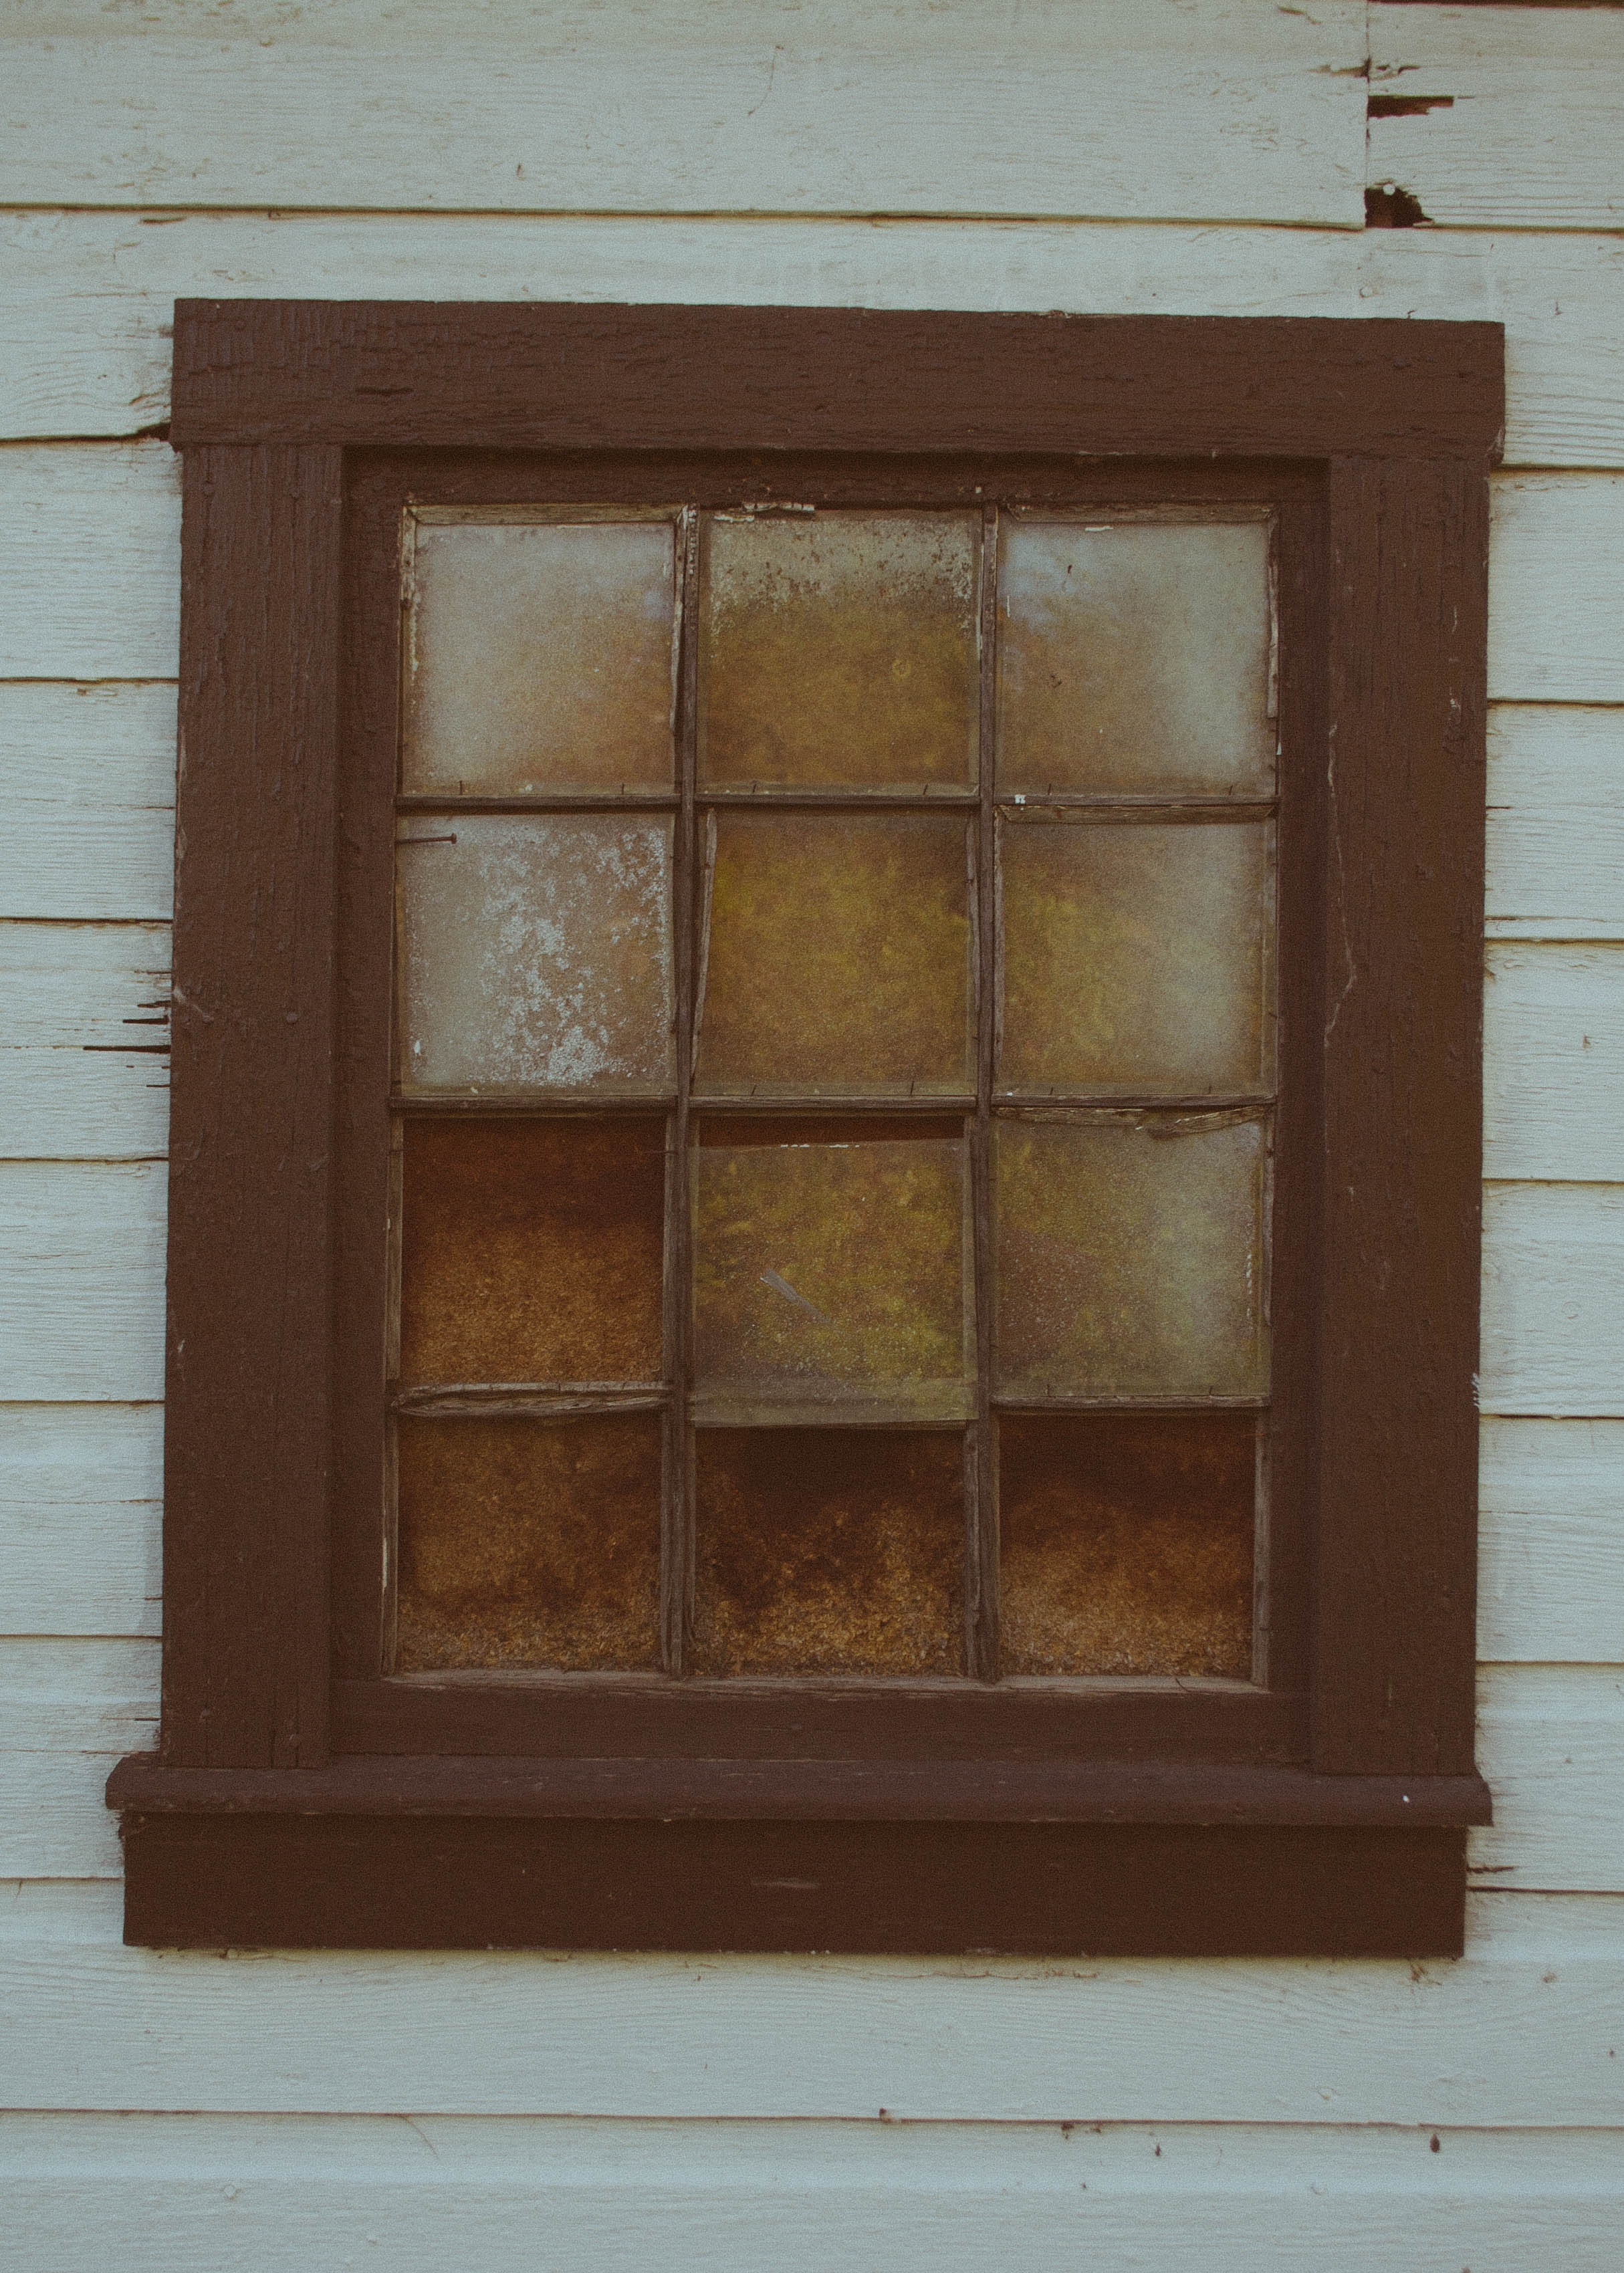 close up photo of square brown wooden window